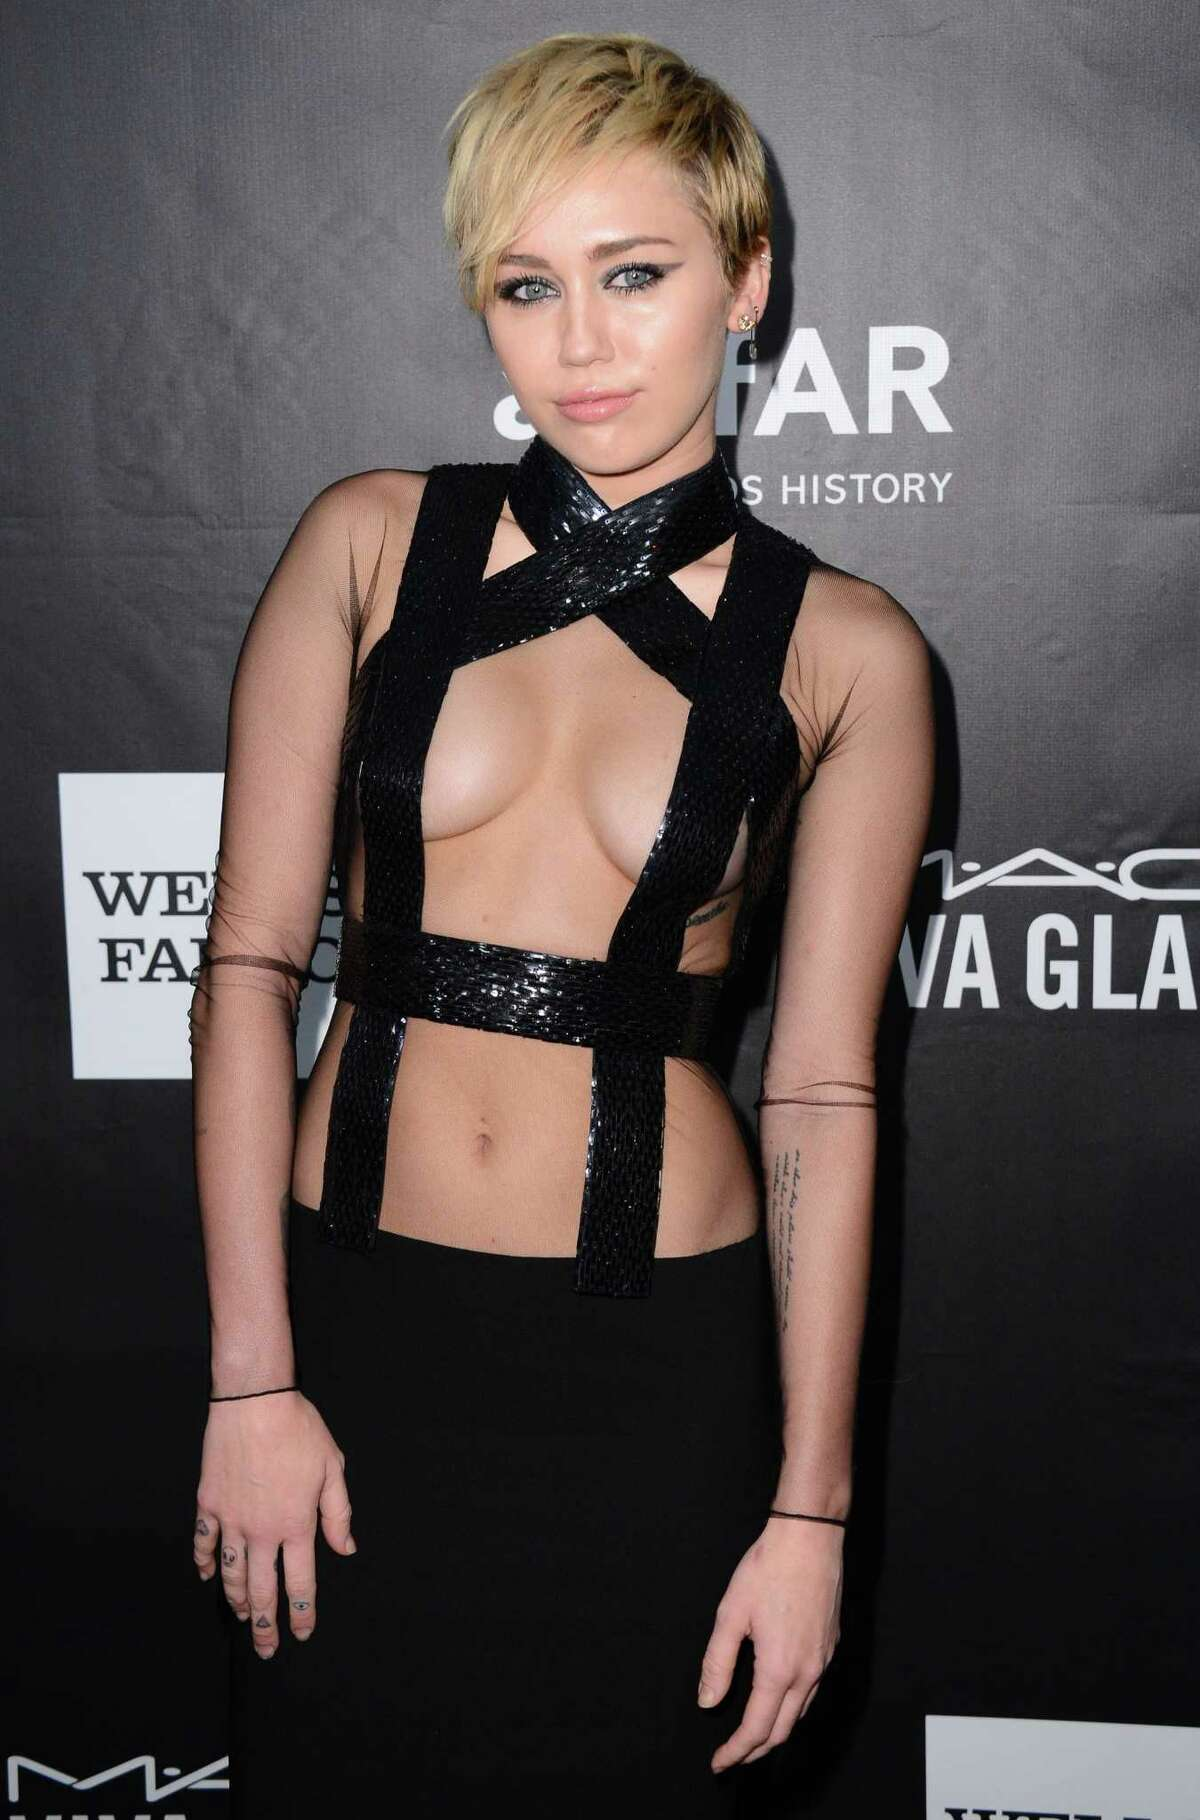 In this Oct. 29, 2014 photo, Miley Cyrus arrives at the 2014 amfAR Inspiration Gala at Milk Studios in Los Angeles.